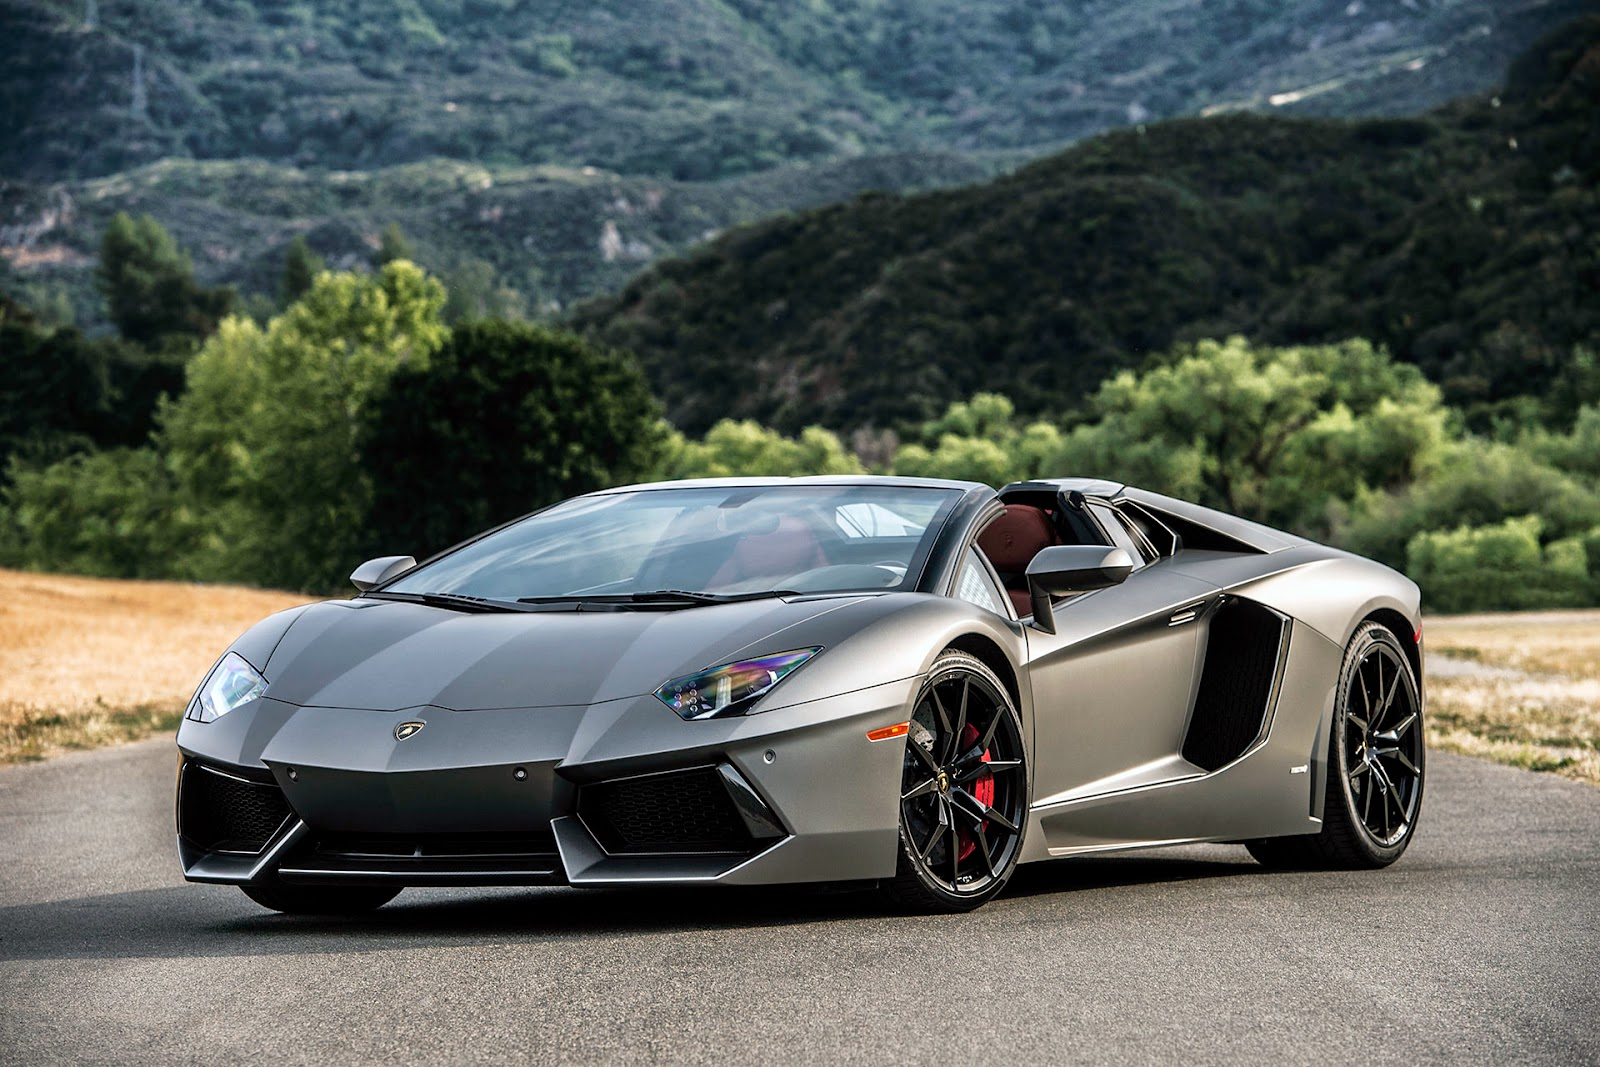 Lamborghini Aventador Lp700 4 4 Hd Car Wallpapers Autos